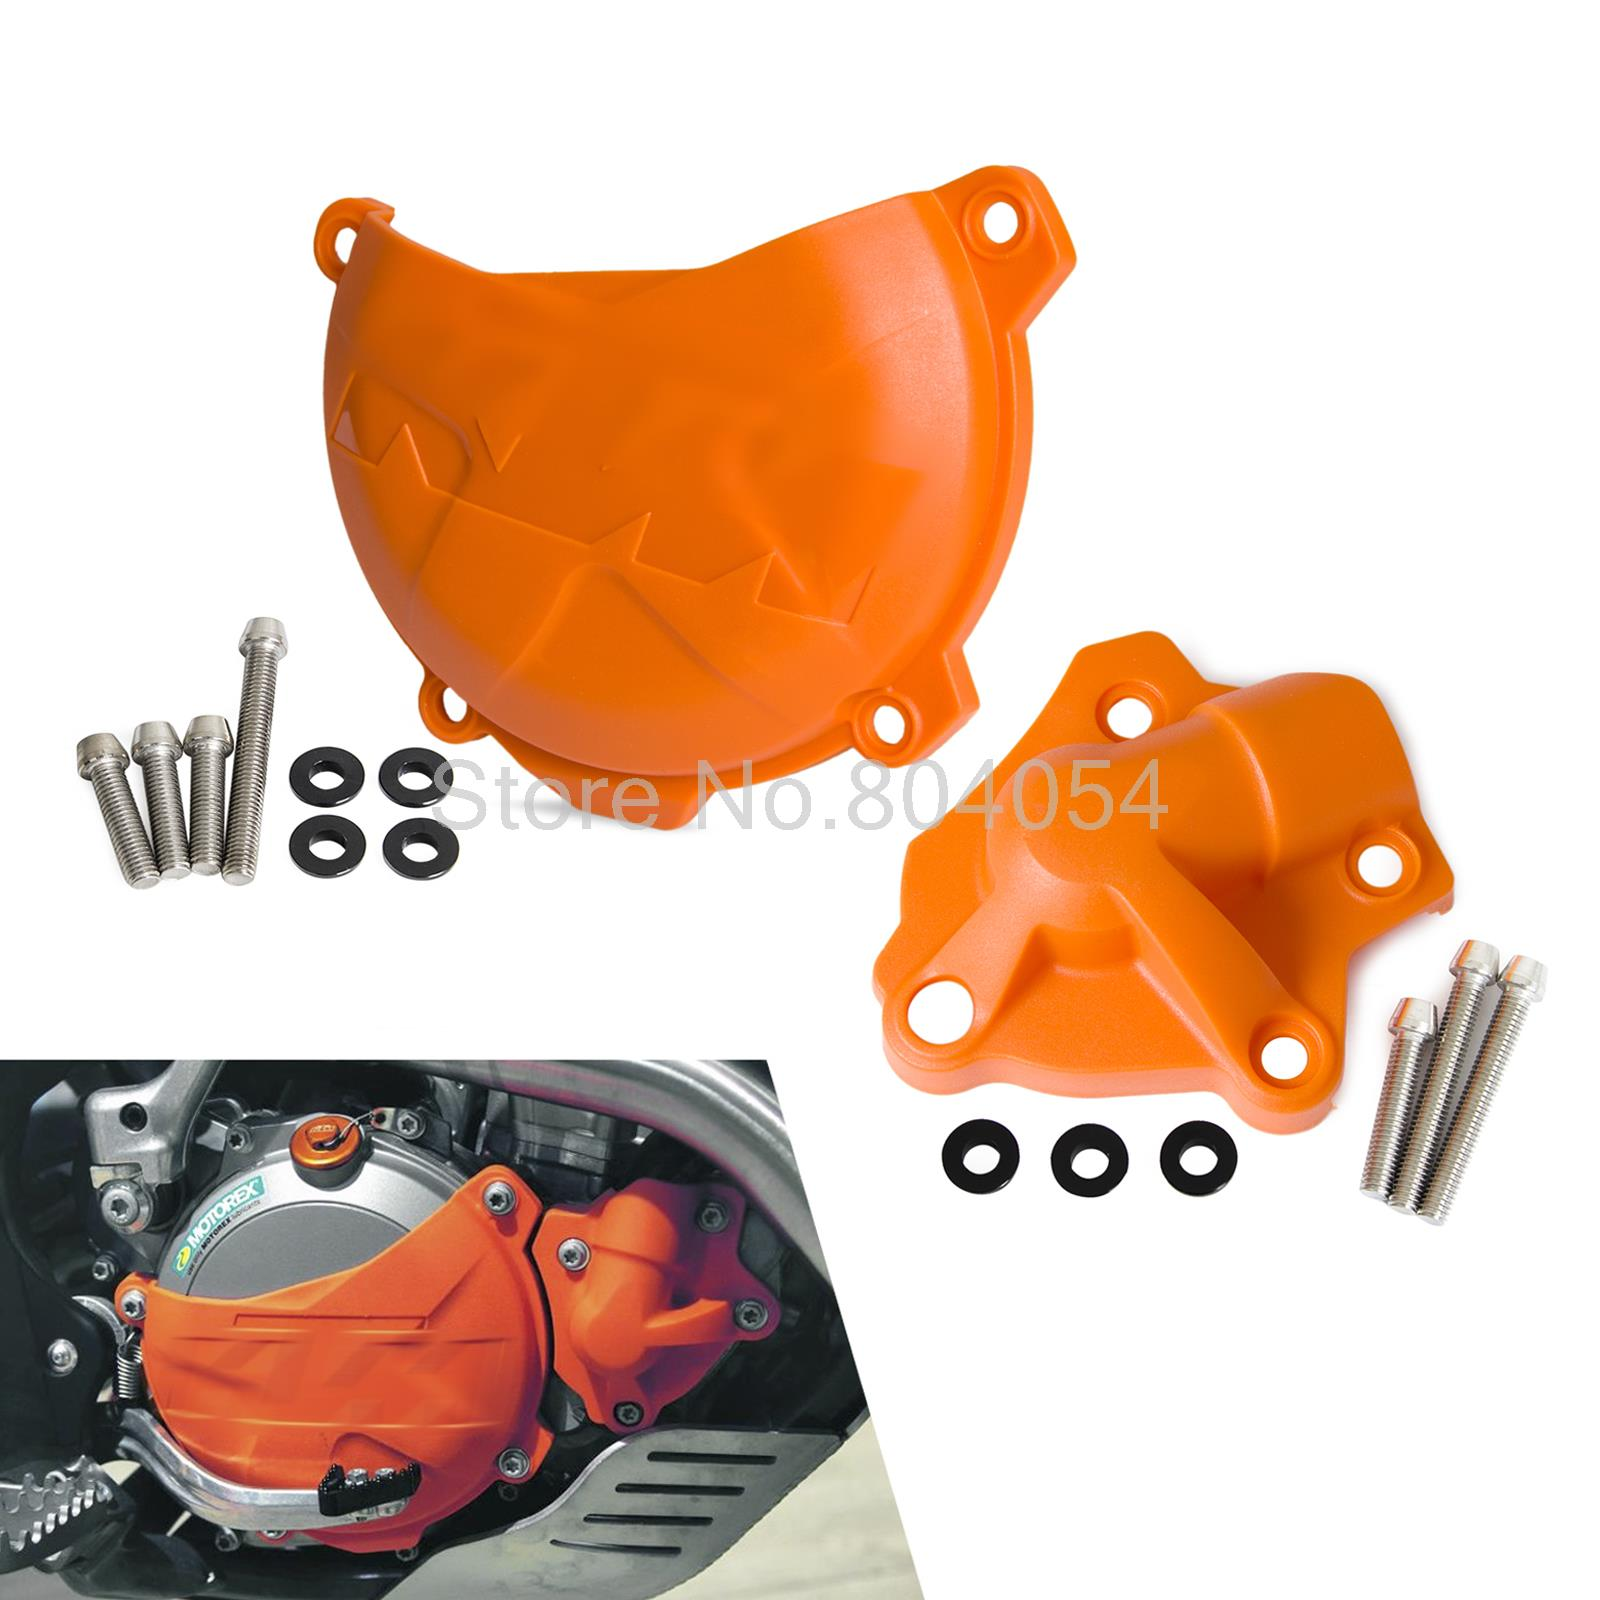 ФОТО Clutch Cover Protection Cover Water Pump Cover Protector for KTM 350 SX-F 2011-2015